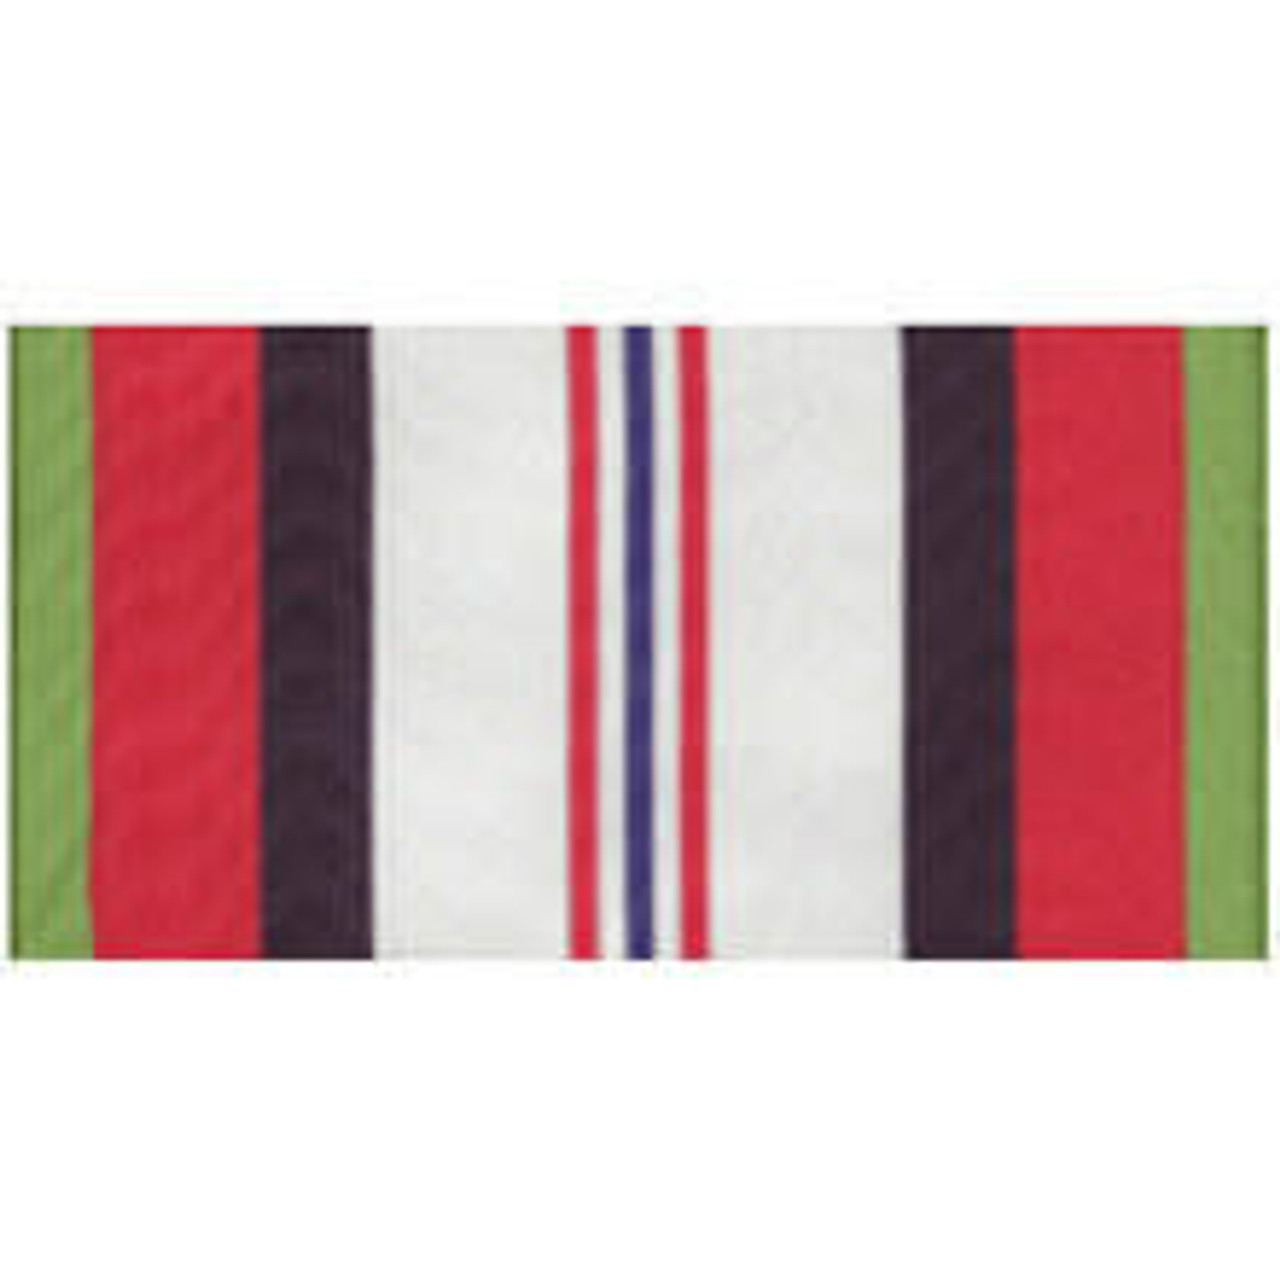 An Afghanistan Campaign Streamer made of rayon with grommet or sleeve at top. Designed with a central white vertical rectangle. Inside central thin blue line with two thin red lines on both sides. Bordered by a thin green line, a red vertical rectangle, and a thick black line which is mirrored on both sides